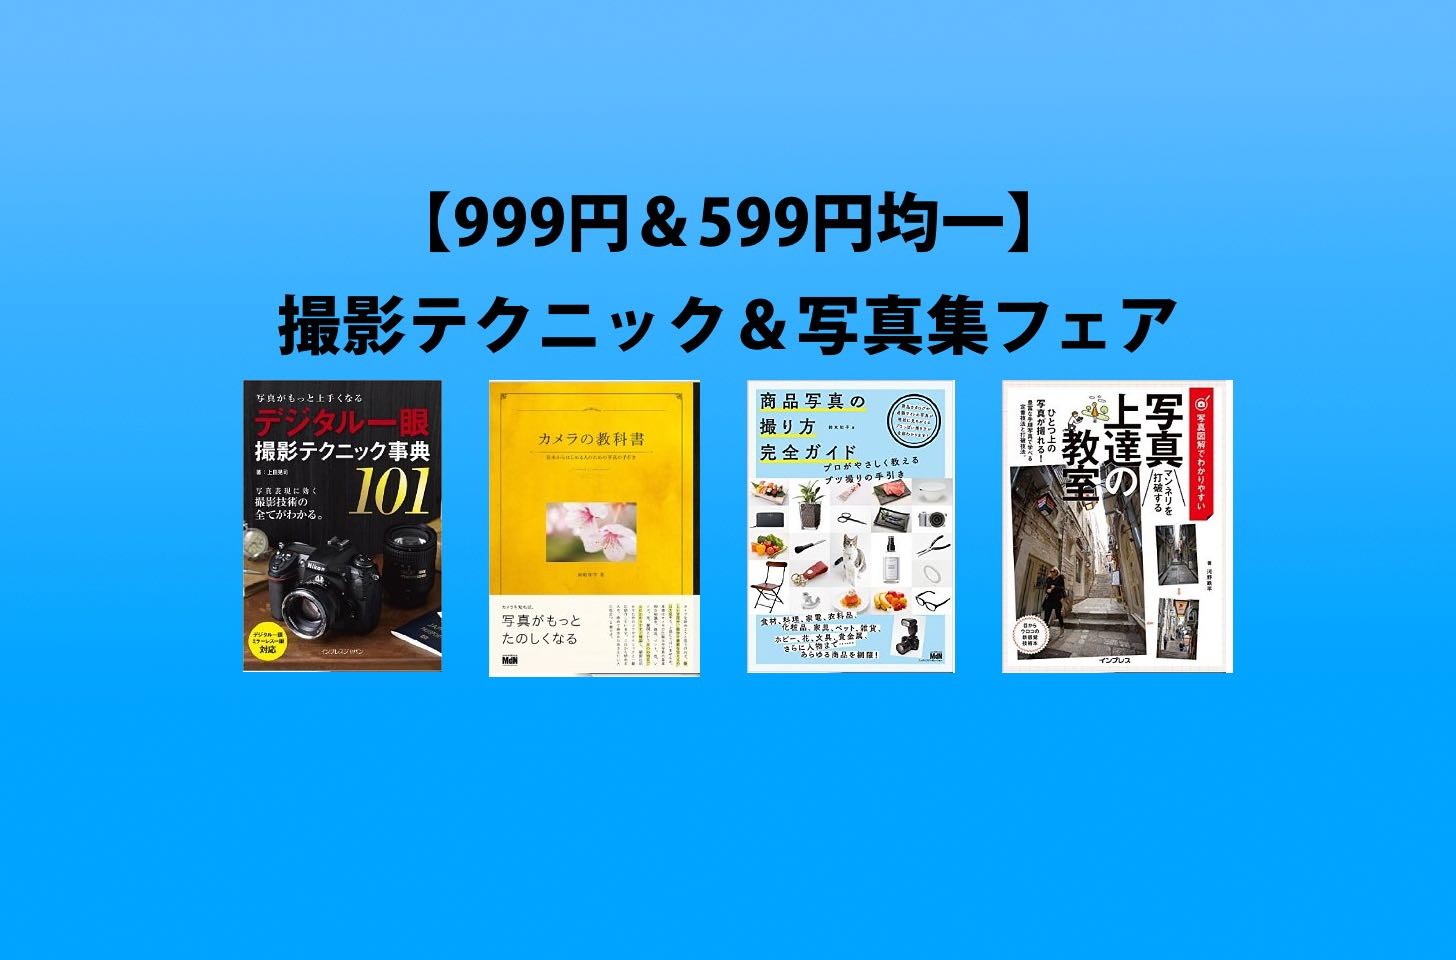 Kobunsha kindle sale 2015 12